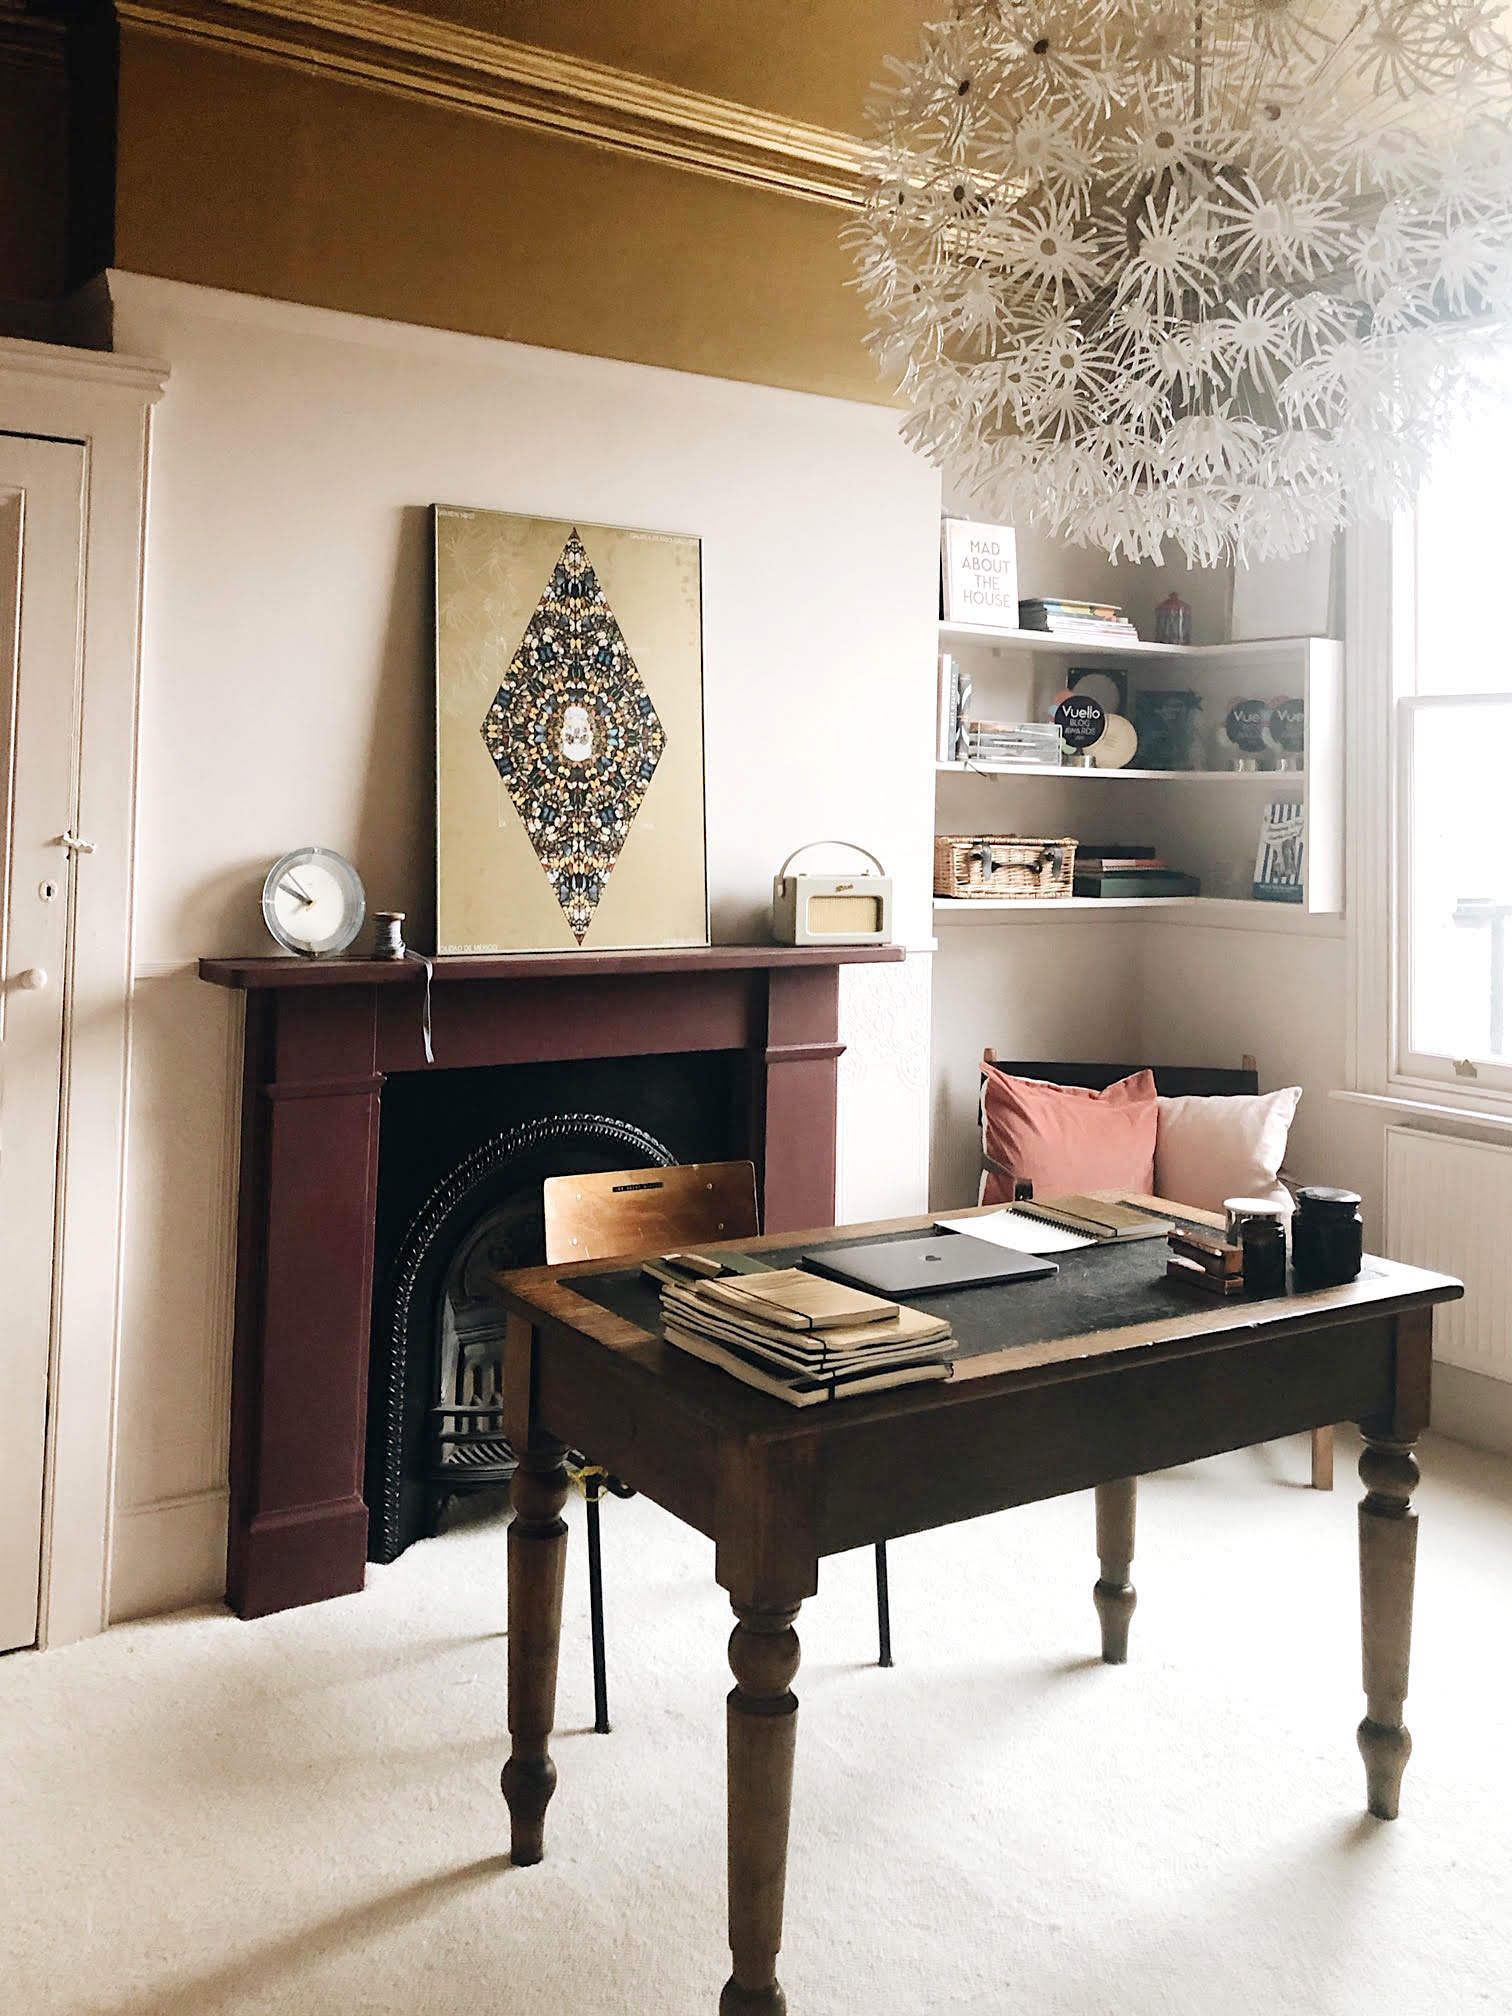 Home office with gold ceiling and pale pink walls blelongs to interior design auther Kate Watson Smyth and shows how you can work from home at a desk from ebay all discussed in the interior design podcast The Great indoors co hosted with Sophie Robinson